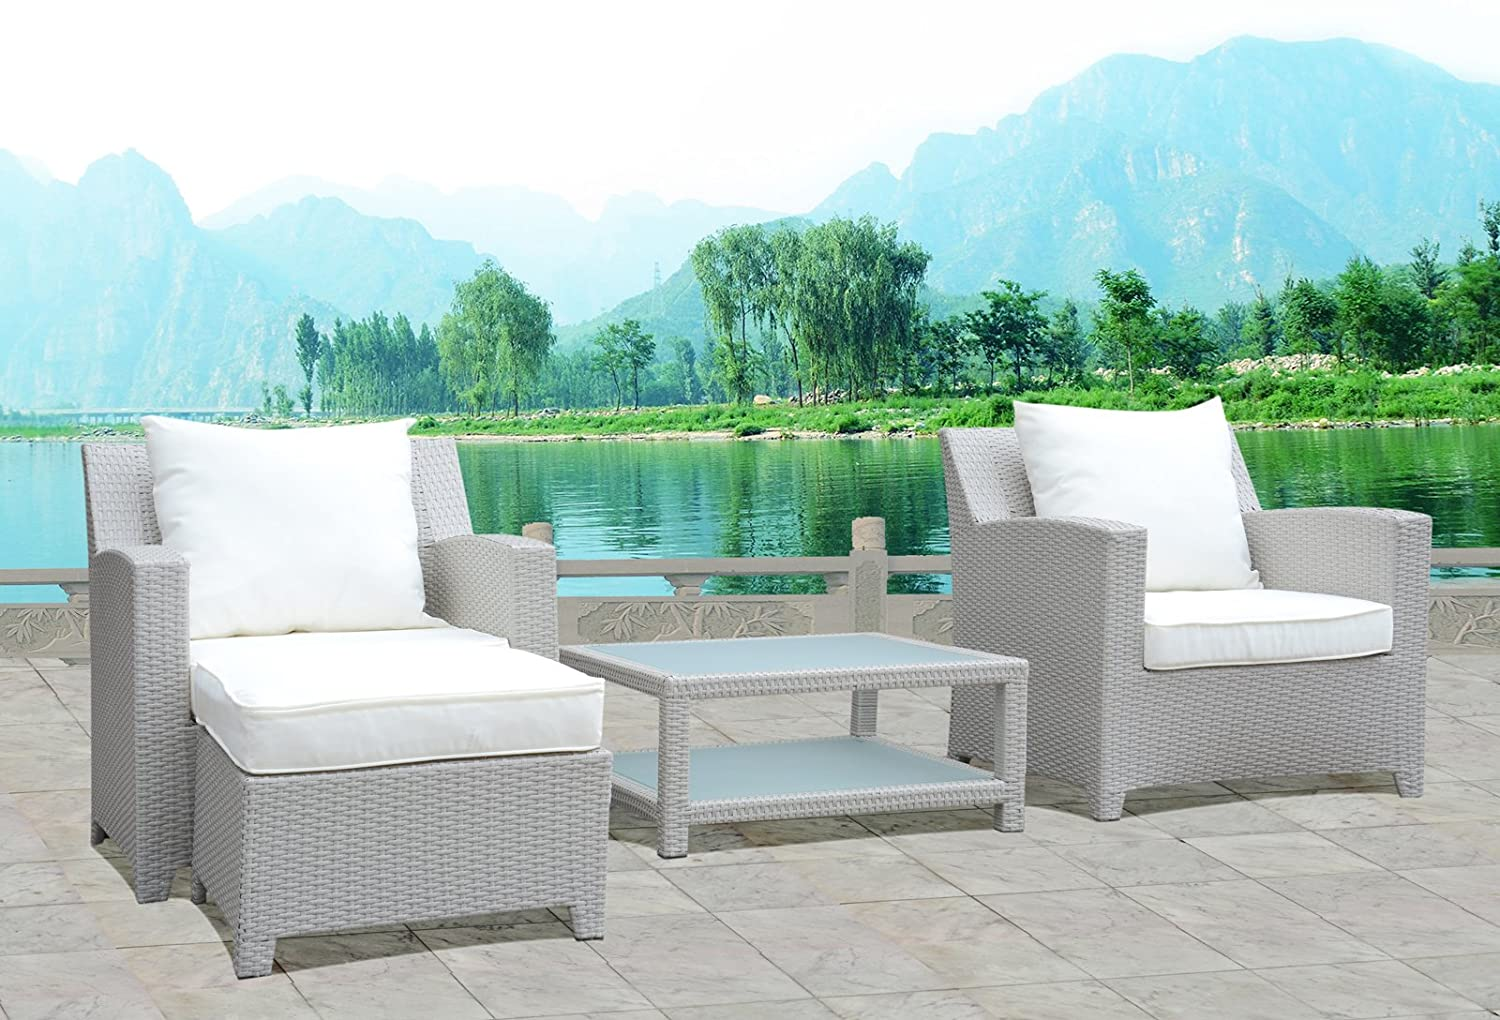 design gartenm bel lounge sitzgruppe polyrattan 2 x sessel 1 x hocker tisch fertig montiert. Black Bedroom Furniture Sets. Home Design Ideas